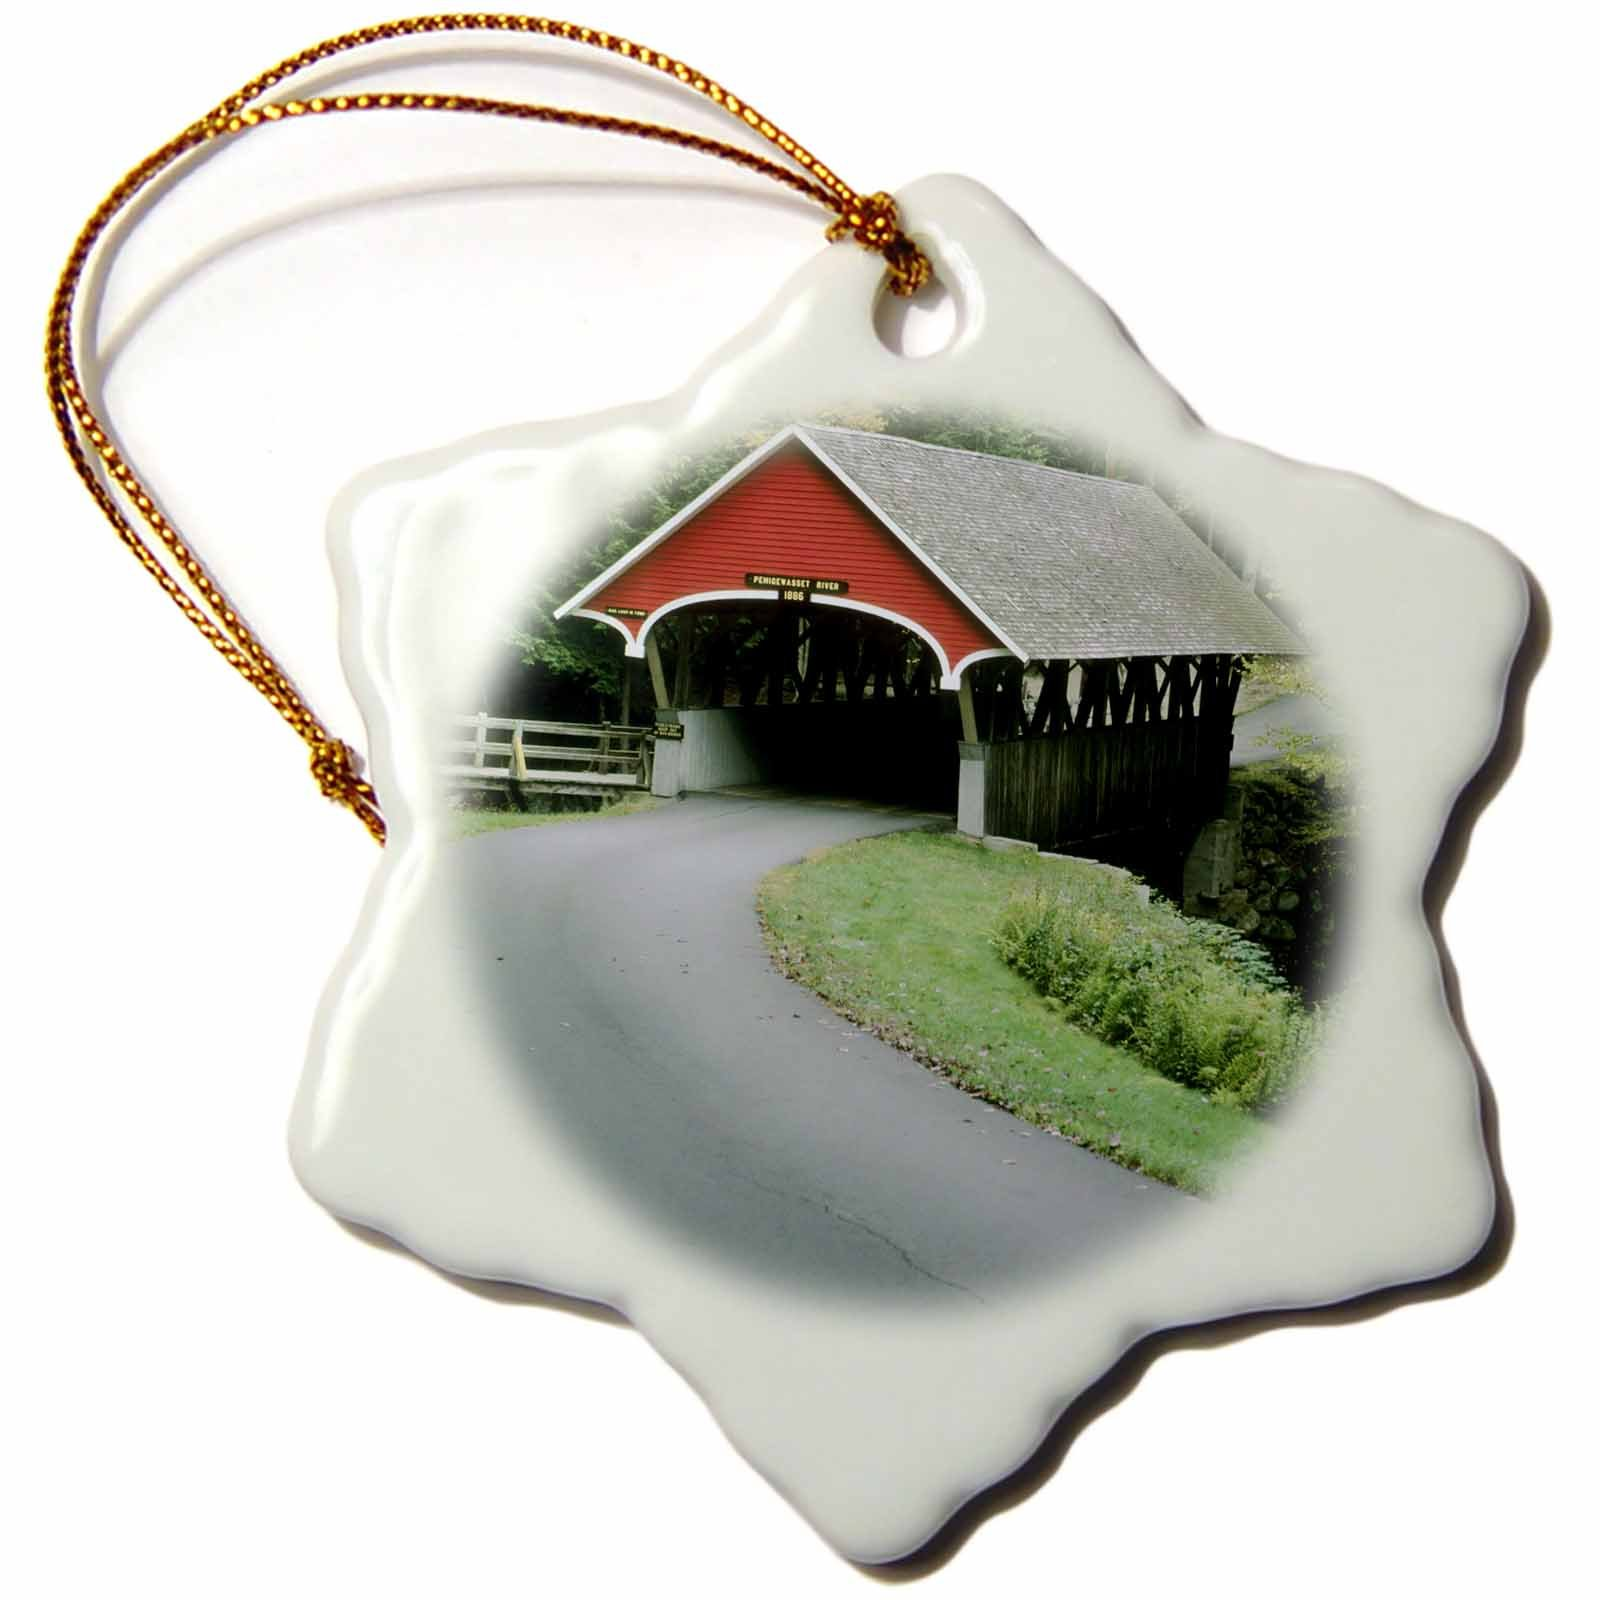 3dRose New Hampshire, White Mountains, Franconia Notch US30 KSC0002 Kevin Schafer Snowflake Ornament, 3''